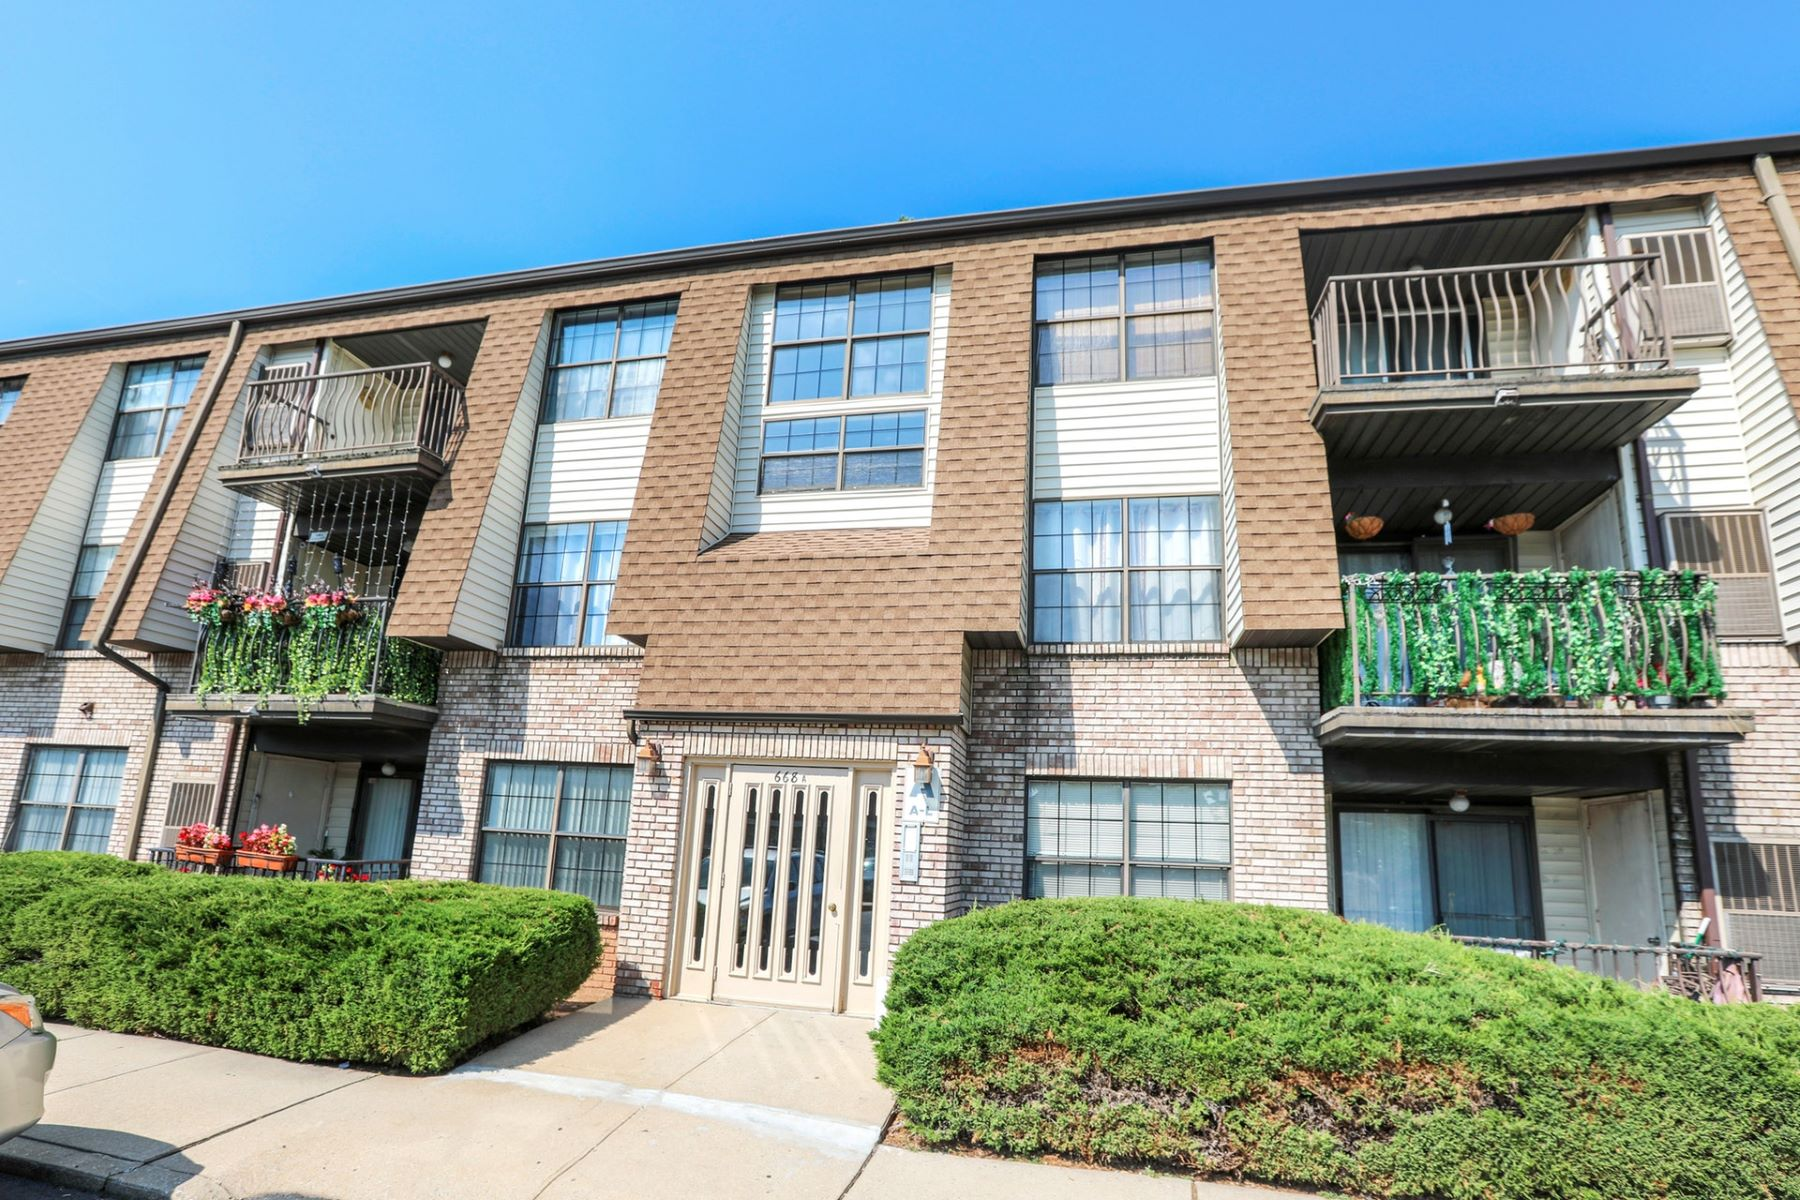 Condominiums for Sale at STOP RENTING AND OWN THIS BEAUTIFUL RENOVATED 2 BEDROOM 2 BATHS CONDO 660-672 North Broad St. #18A Elizabeth, New Jersey 07208 United States